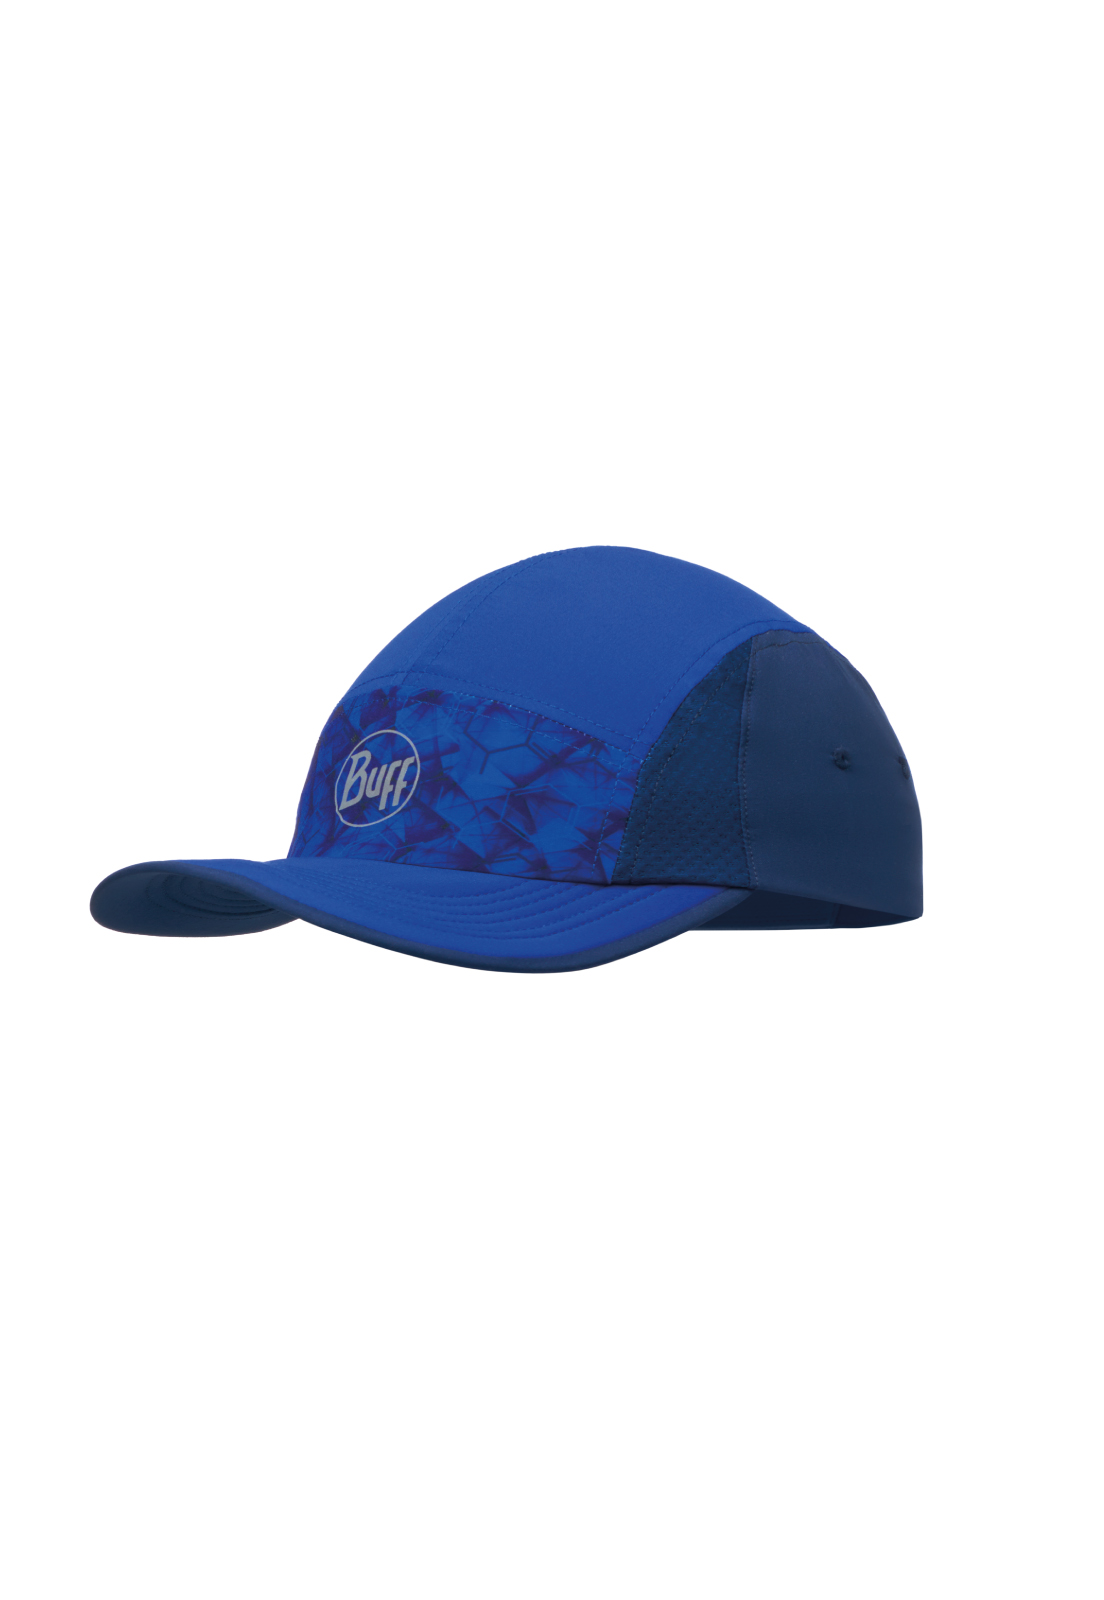 Run Cap Adren Cape Blue